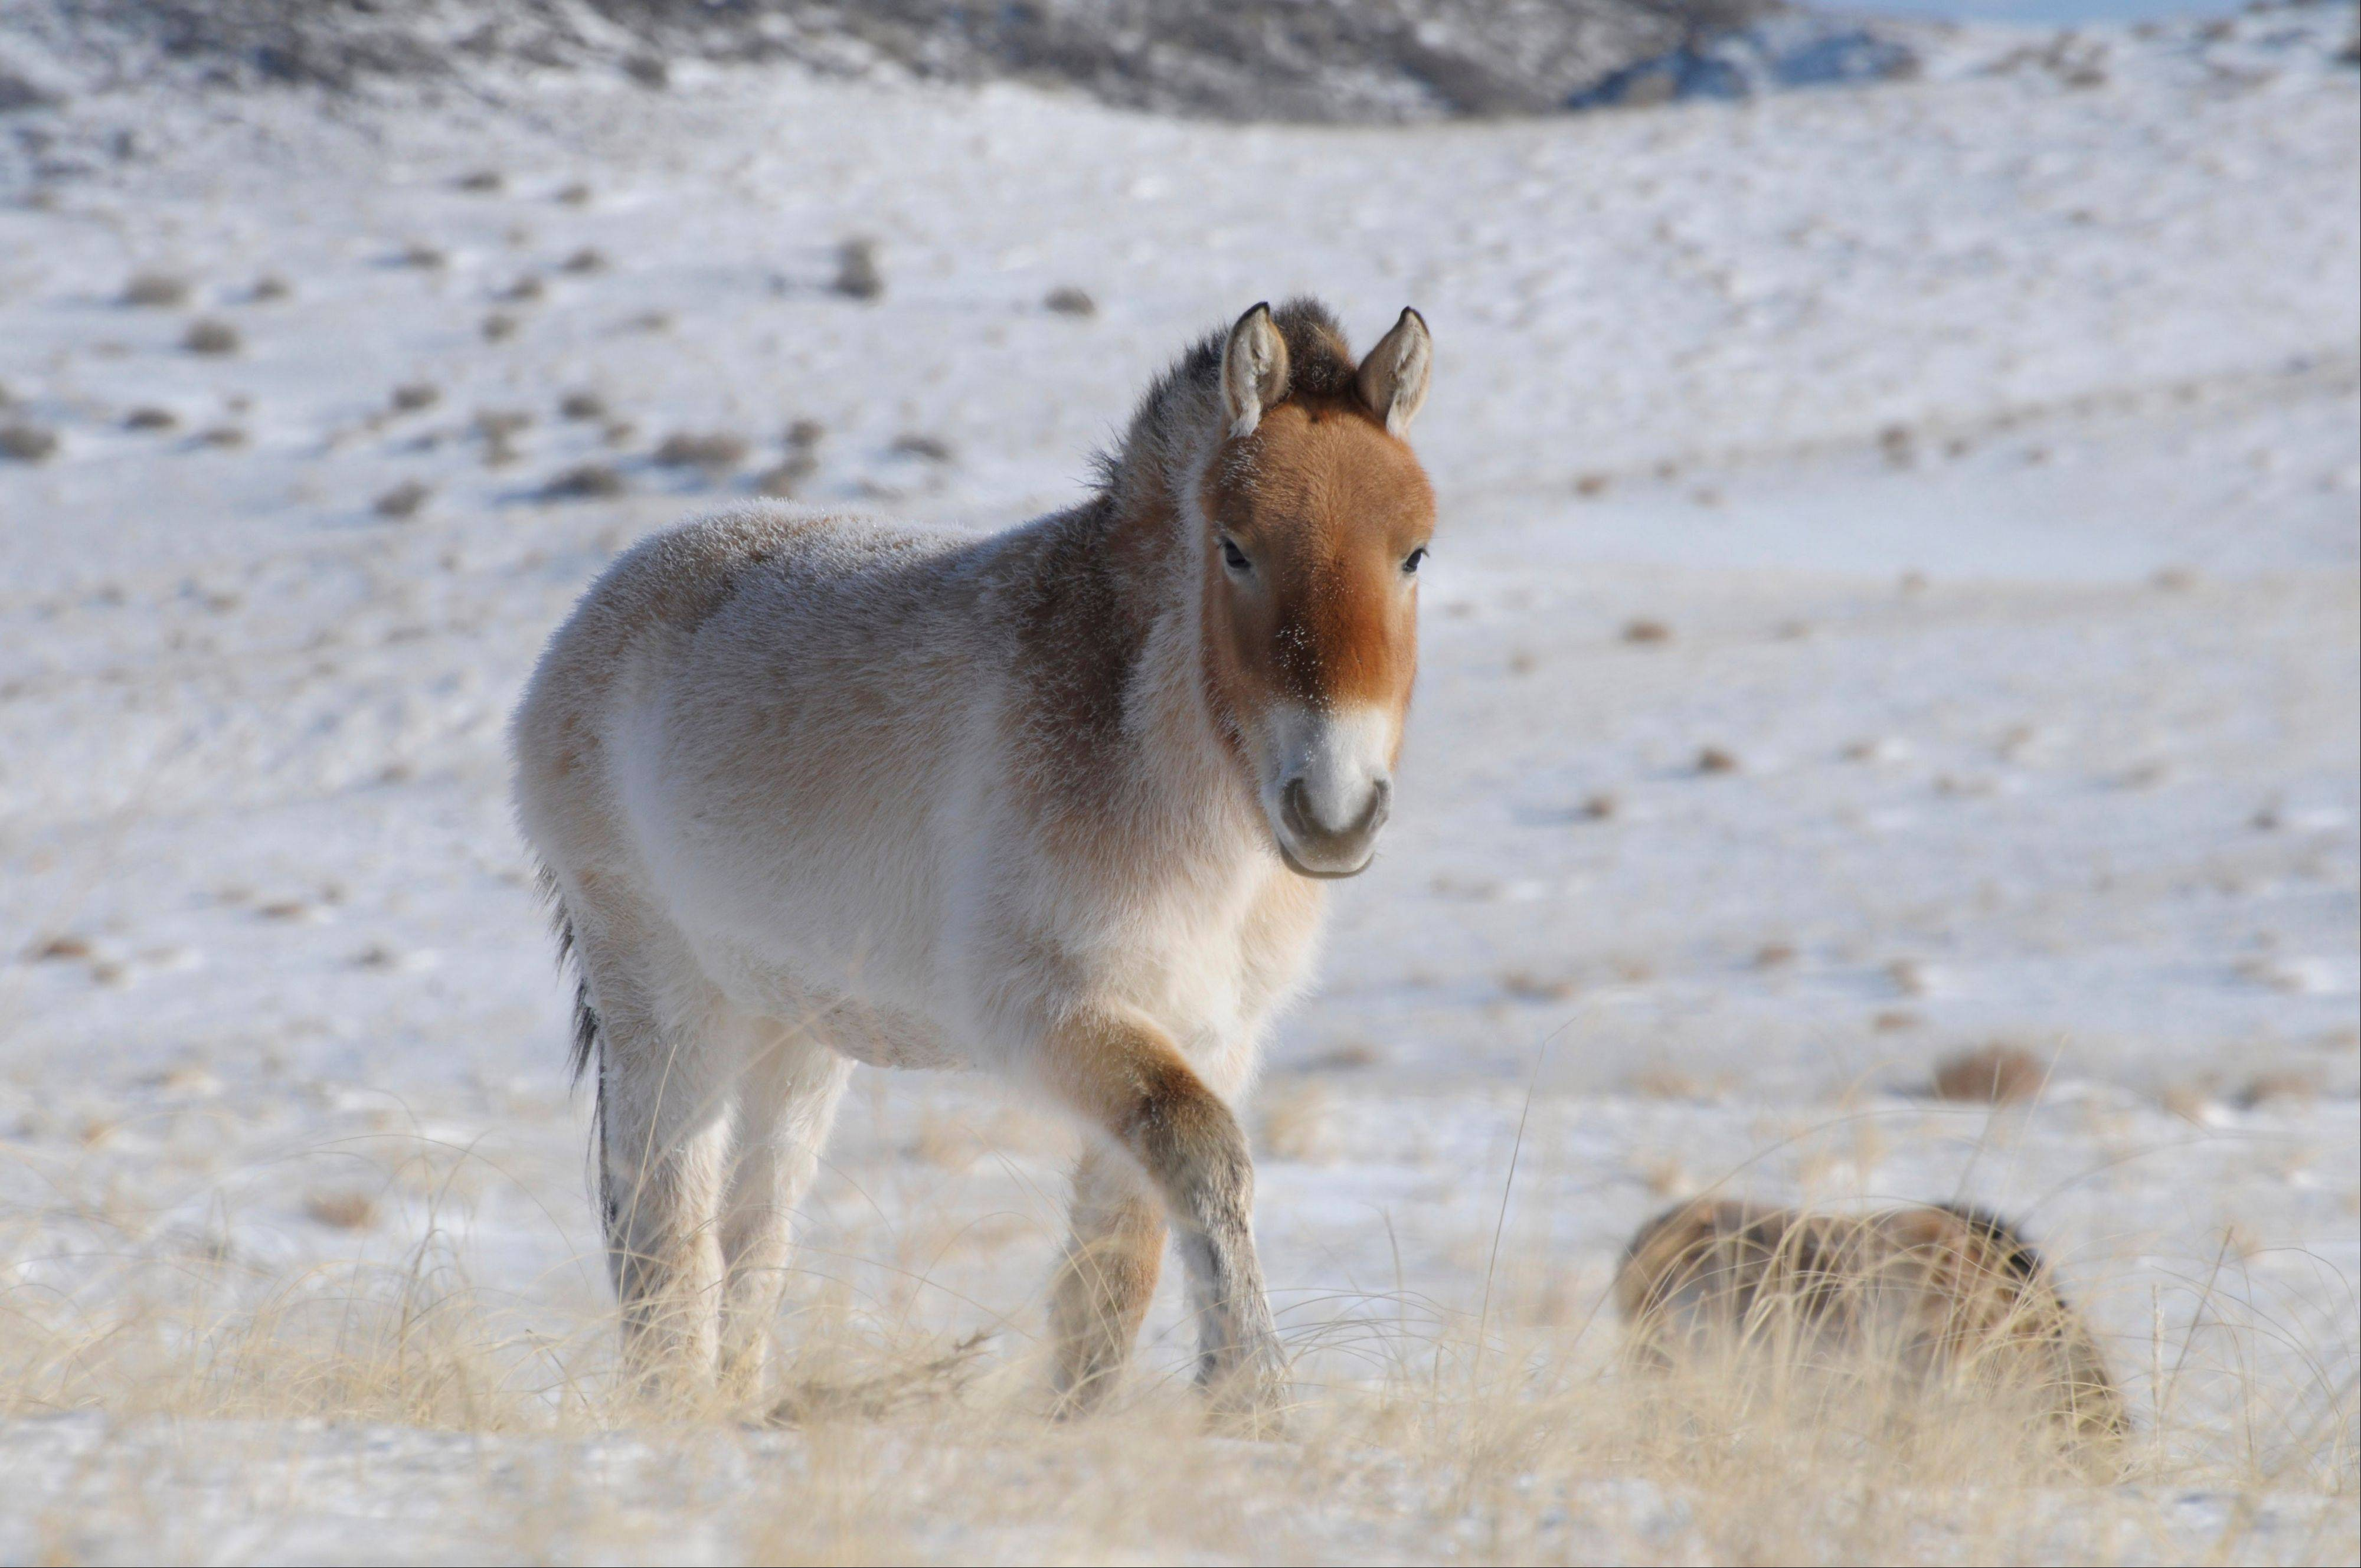 In this January 2010 photo provided by the journal Nature via Przewalski's Horse Association, a Przewalski's horse is shown in Khomyntal, western Mongolia, in one of three reintroduction sites. From a tiny fossil bone found in the frozen Yukon, scientists have deciphered the genetic code of an ancient horse about 700,000 years old -- nearly 10 times older than any other animal that has had its genome mapped. The researchers also found new evidence that the endangered Przewalski's horse, found in Mongolia and China, is the last surviving wild horse.